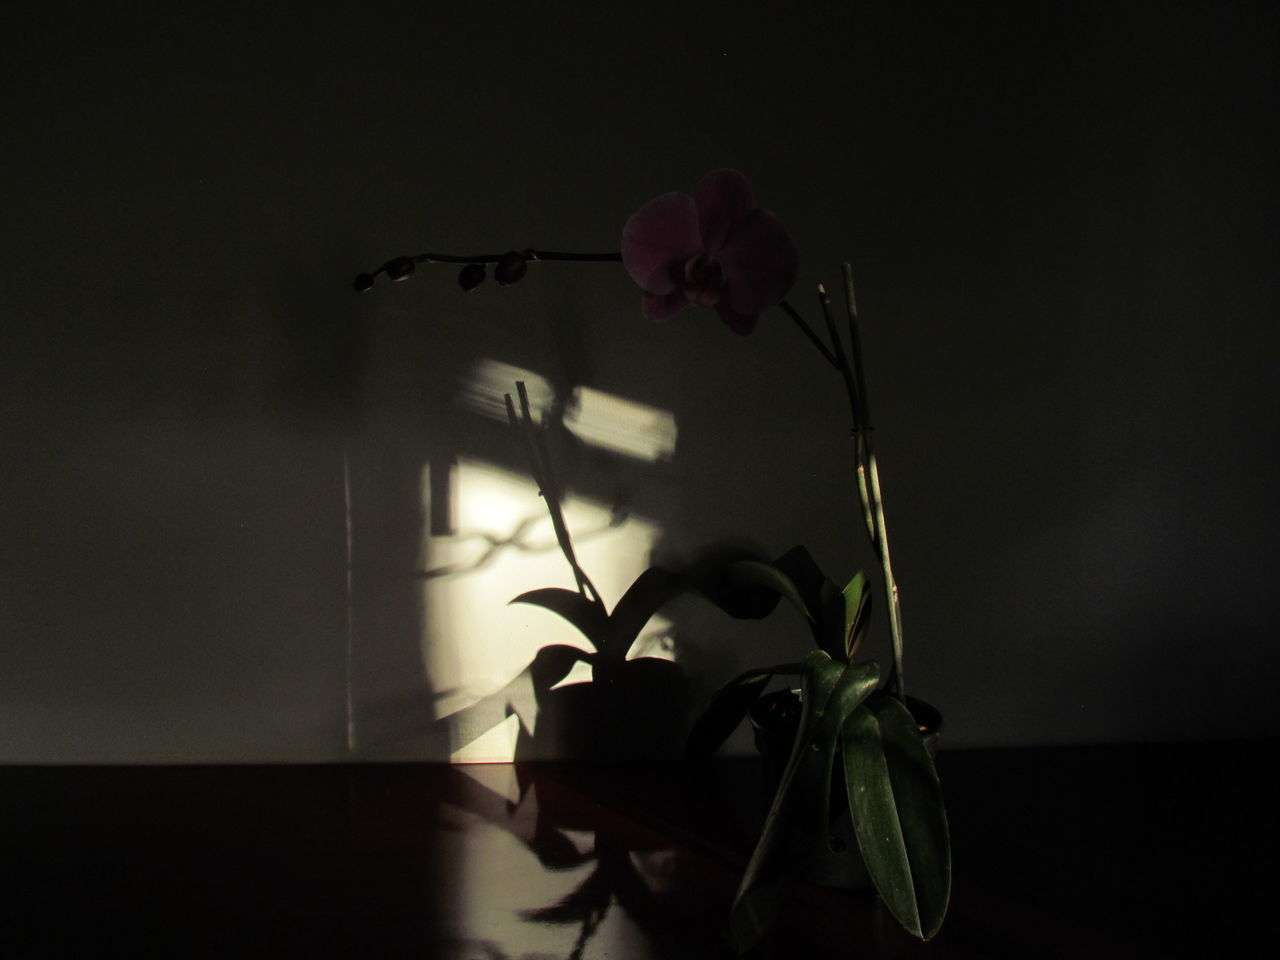 Shadow Flower Indoors  No People Night Fragility EyeEm Plant Beauty In Nature Eyeemphotography Photography Nature's Close-up Outdoors EyeEm Gallery Abandoned Orchids Tranquil Scene Orchids Collection